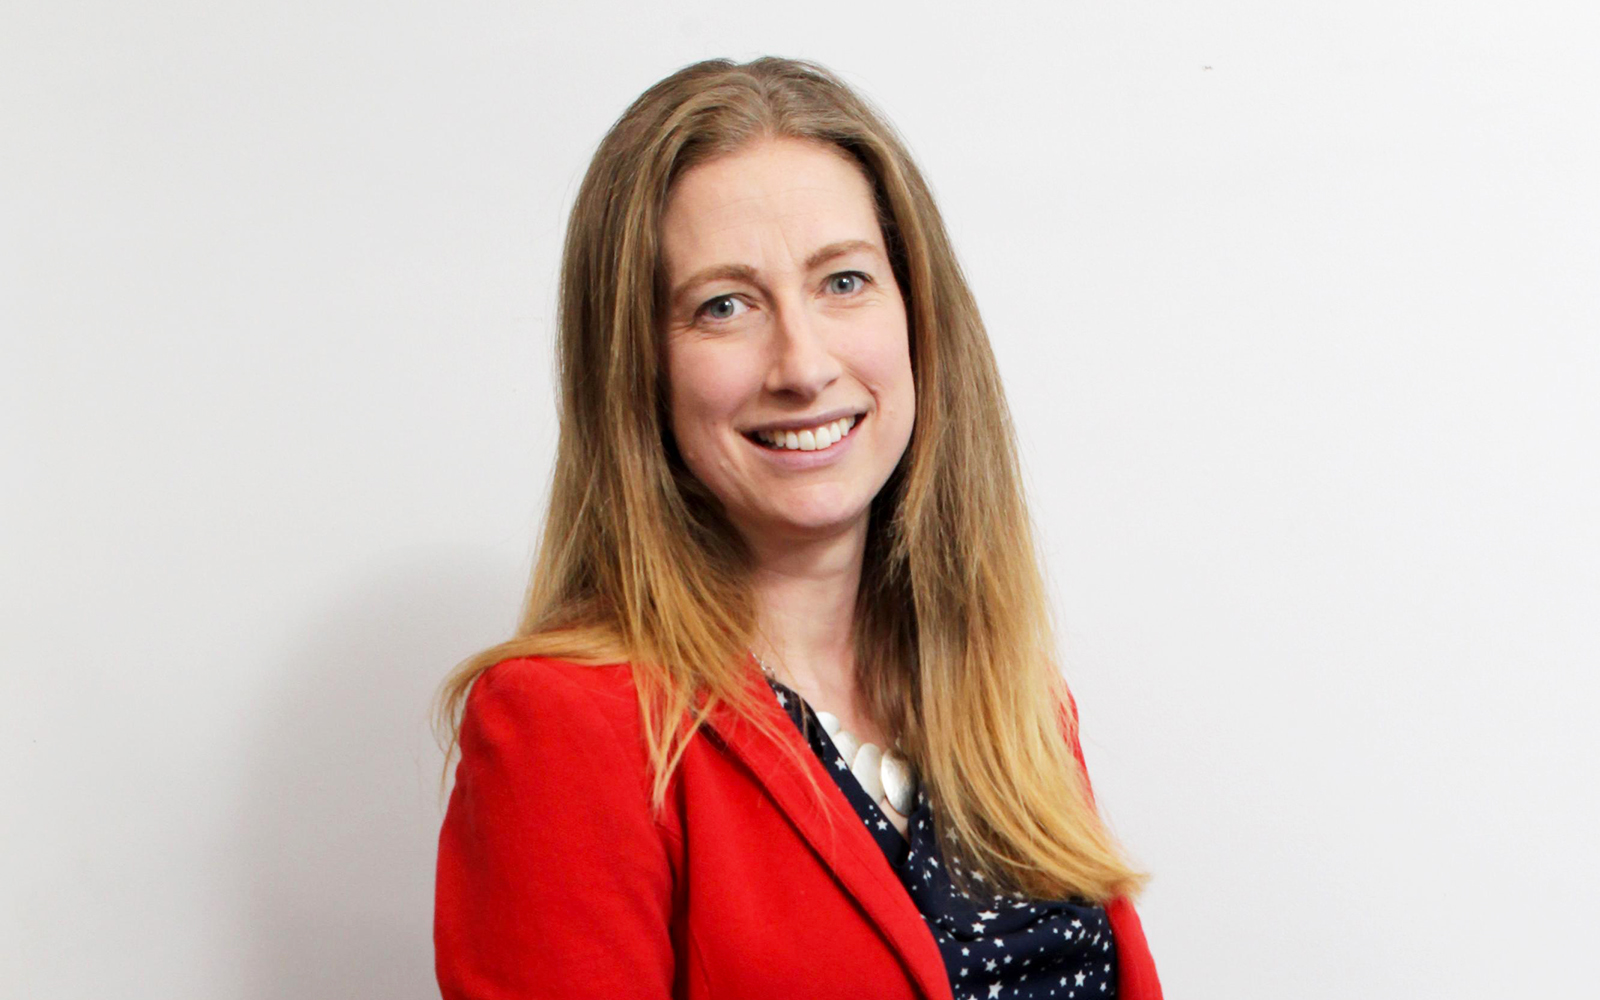 Claire McCarthy, general secretary of the Co-operative Party